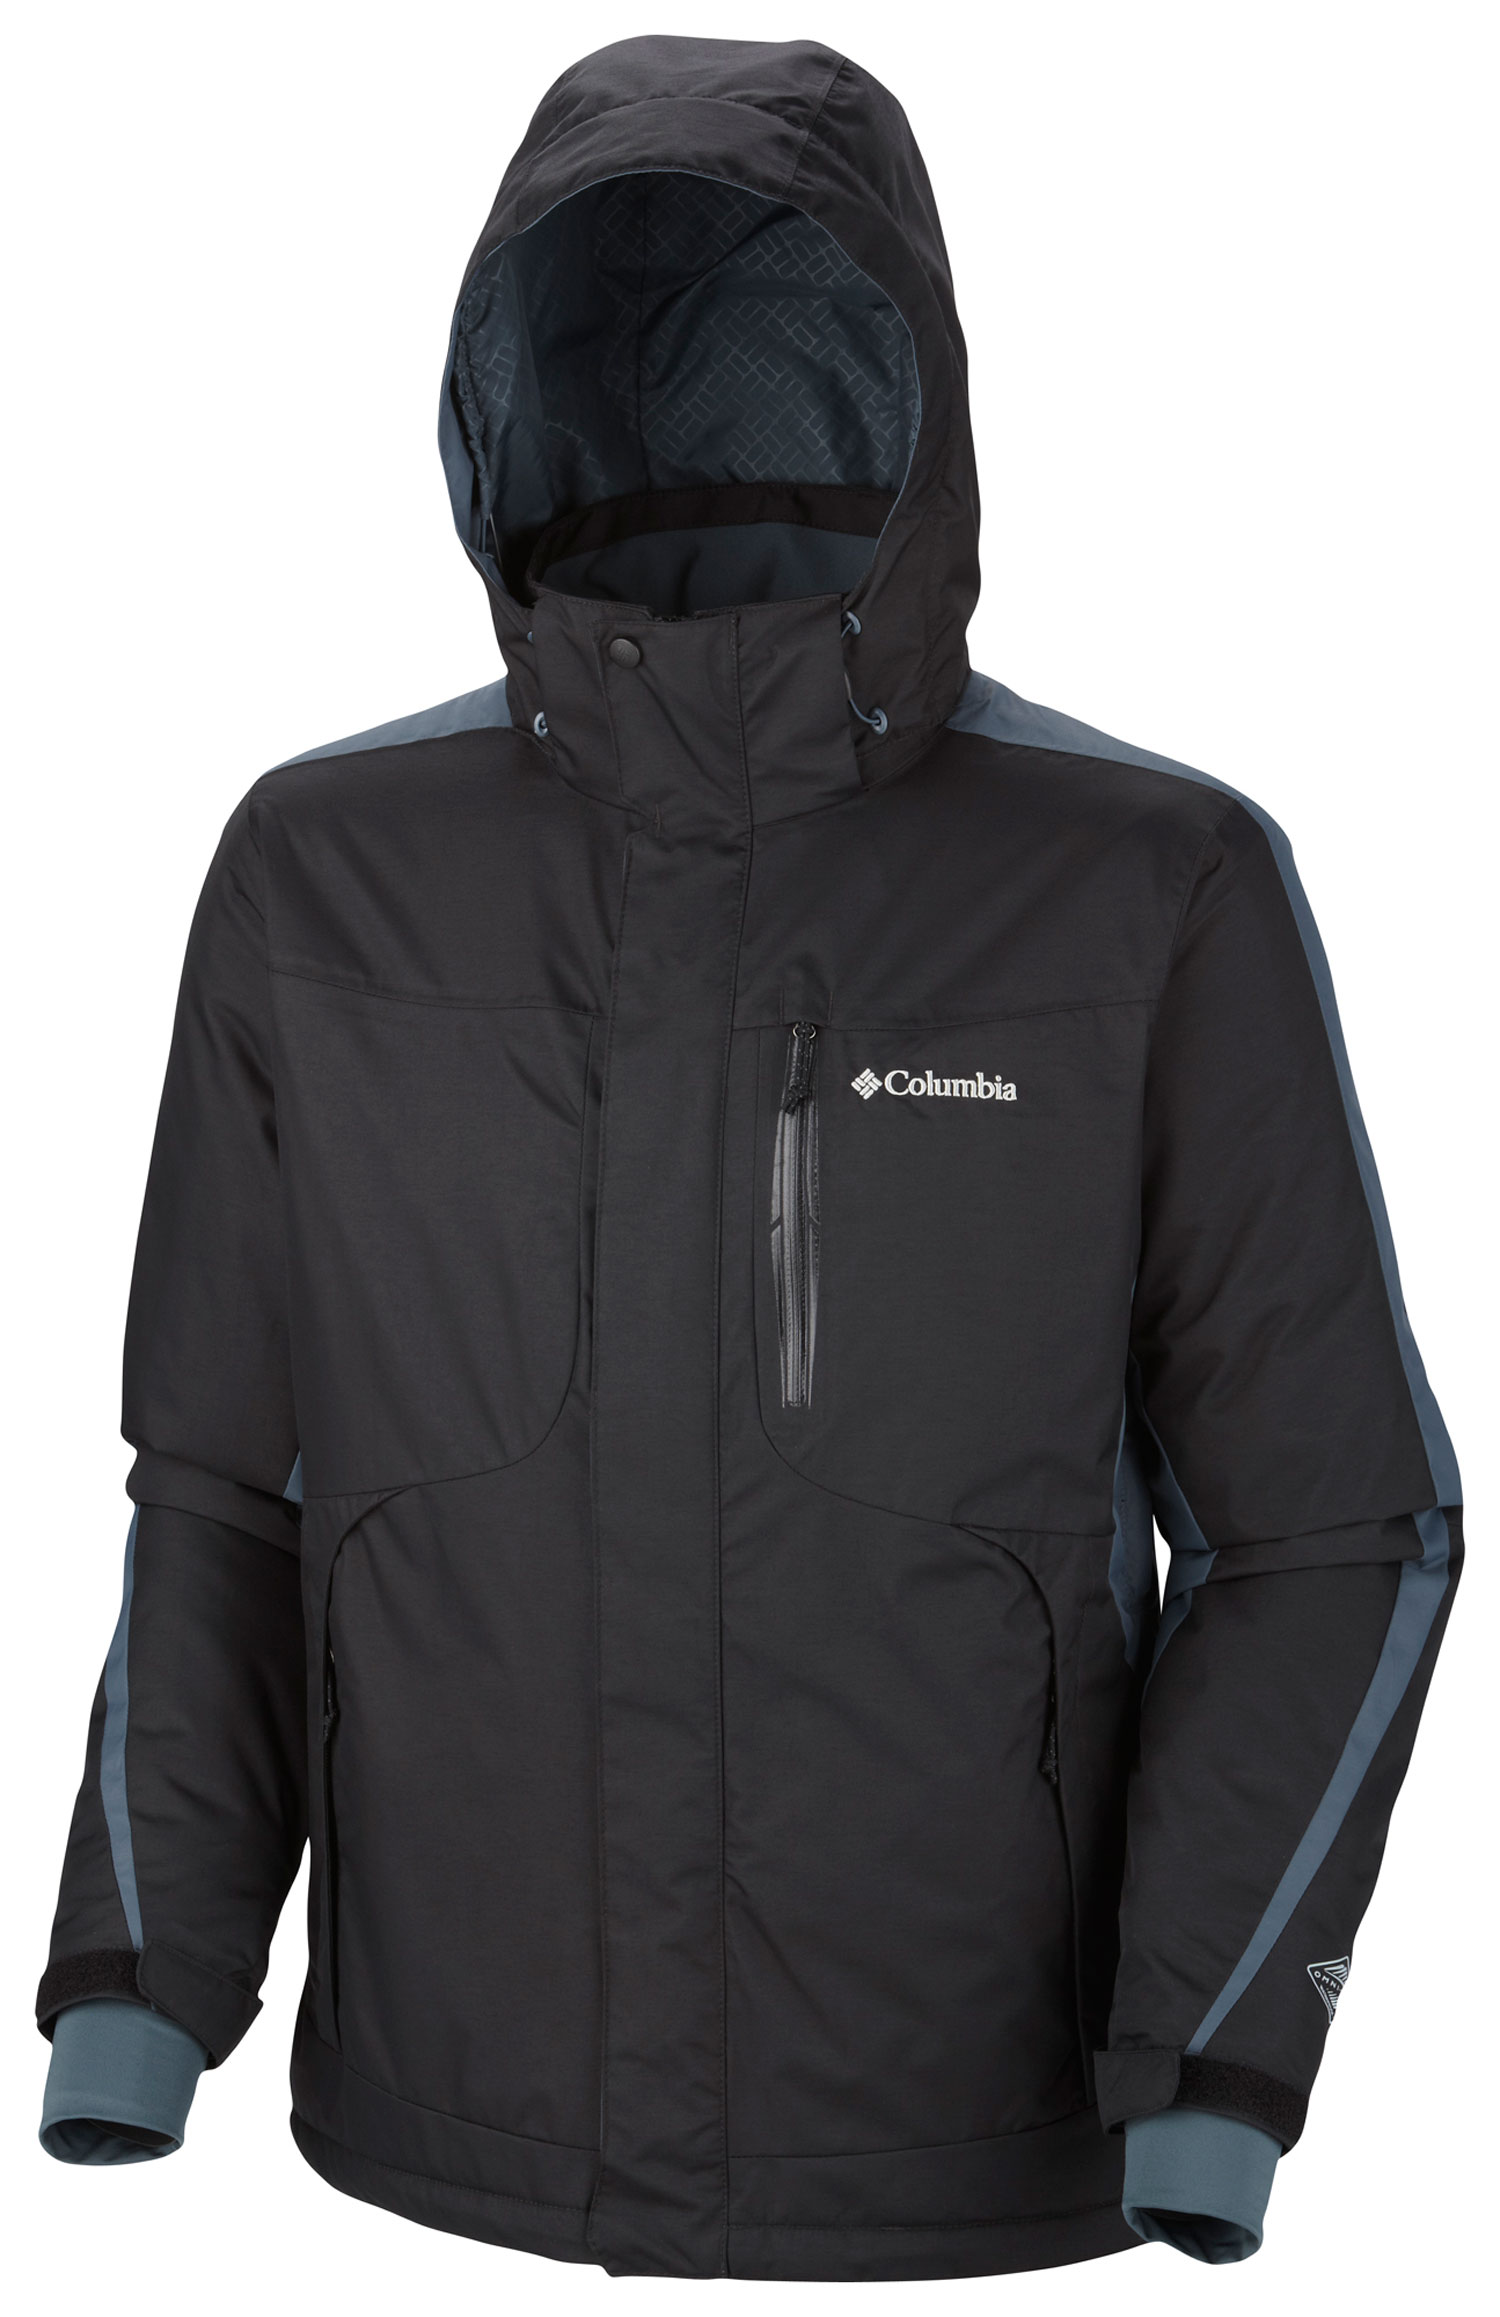 Ski Key Features of the Columbia Cubist 2.0 Ski Jacket: FABRIC Shell: 100% nylon Legacy twill, 100% polyester Legacy twill. Lining: 100% polyester Thermal Reflective. Insulation: 50% polyester/50% recycled polyester, 80g OH. FIT Modern Classic Omni-Heat™ thermal reflective and insulated Omni-Tech™ waterproof/breathable critically seam sealed Removable, adjustable storm hood Drop tail Underarm venting Adjustable, snap back powder skirt Comfort cuffs Laser cut pocket detail Interior security pocket Media and goggle pocket Adjustable cuff tabs - $125.95